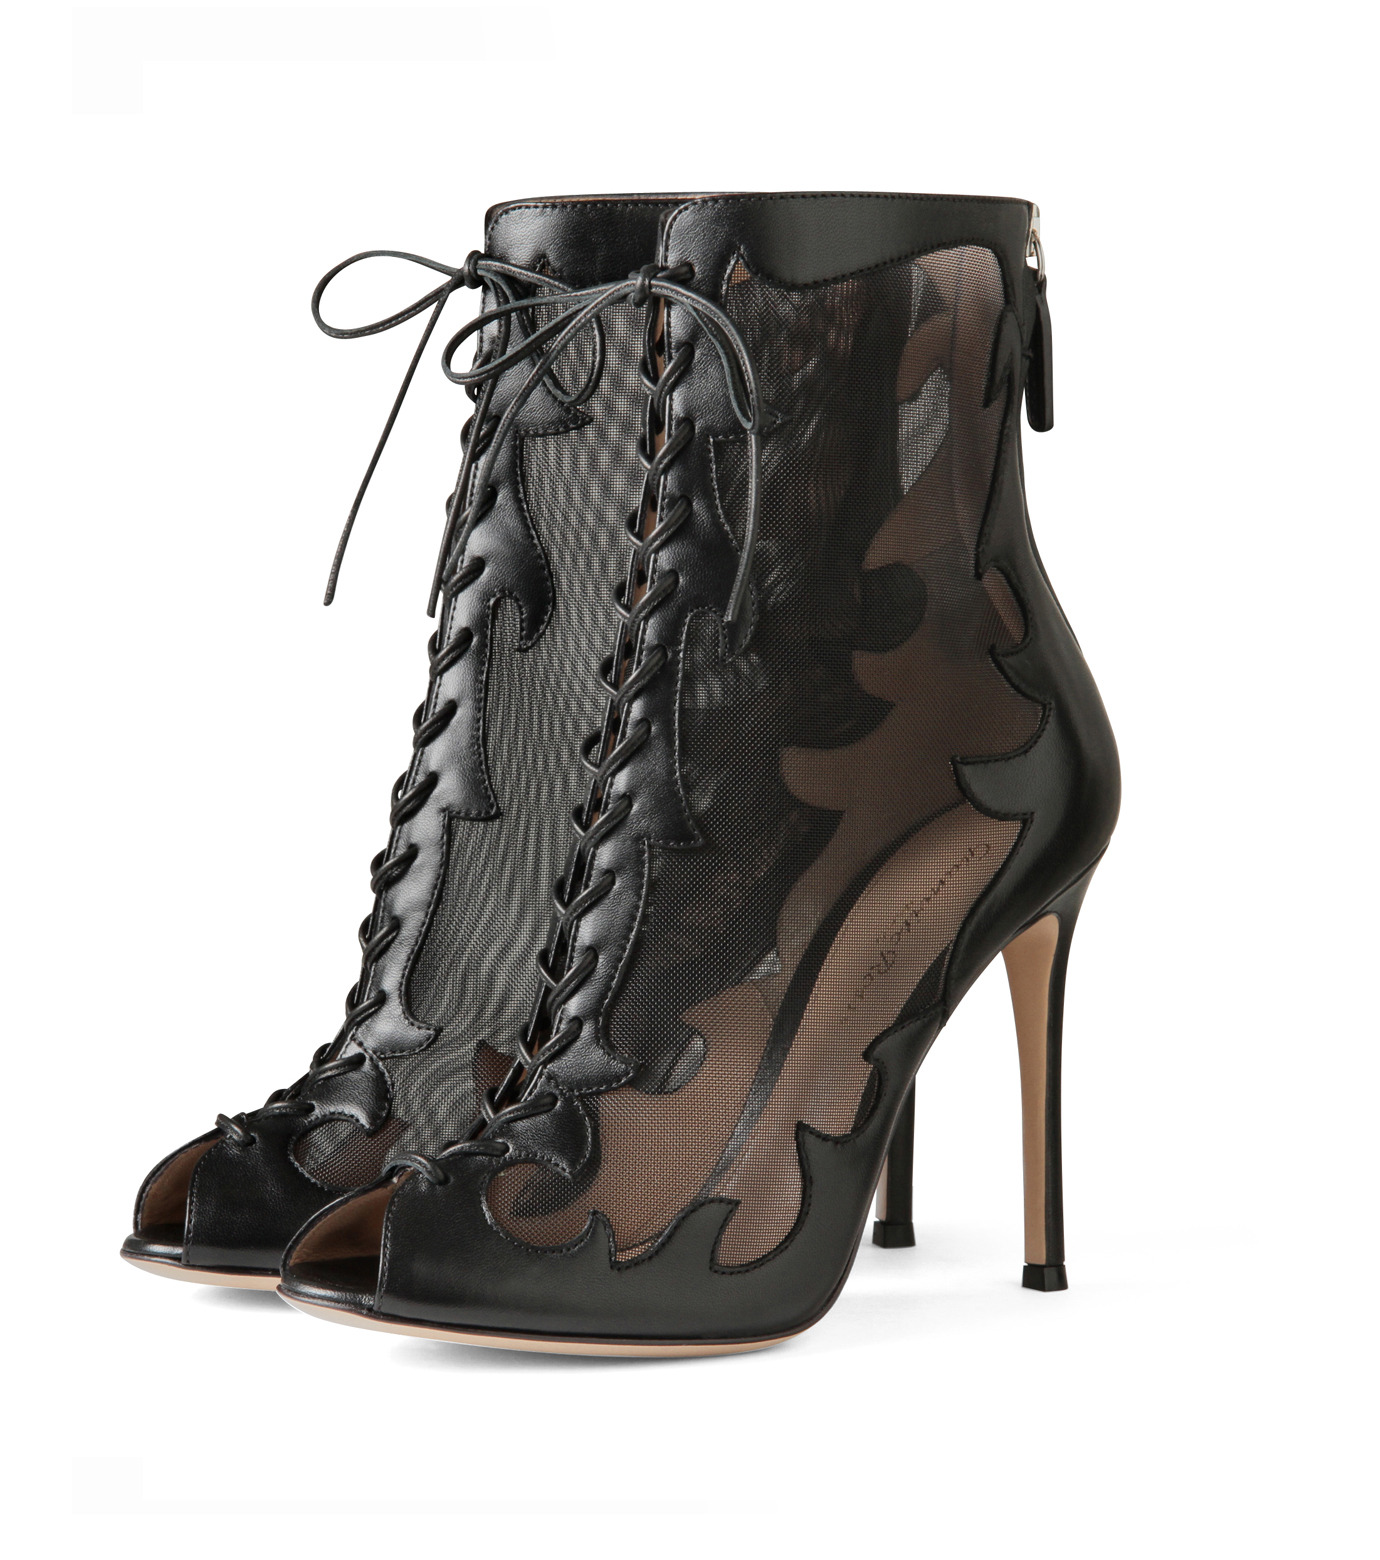 Gianvito Rossi(ジャンヴィト ロッシ)のWestern Sheer Lace Up Boots-BLACK(シューズ/shoes)-GQ50205-13 拡大詳細画像3